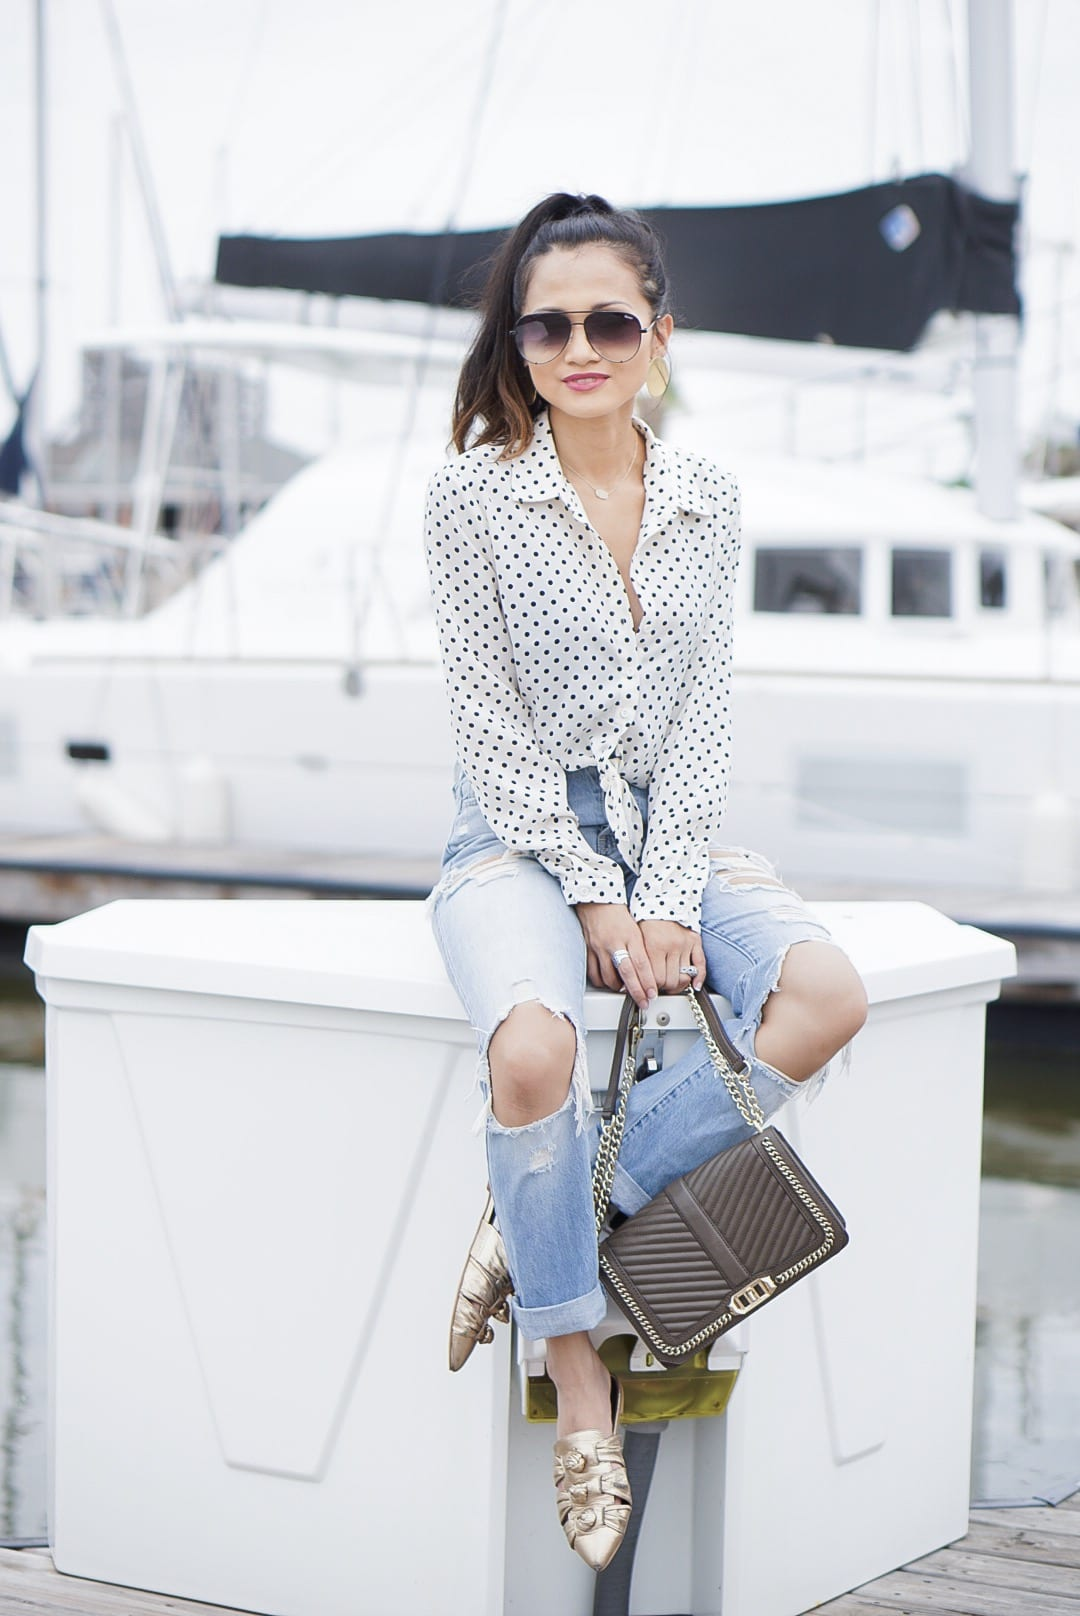 coping tips, faith, praying, power of prayer, dealing with a tragedy, dealing with grief, mom guilt, #polkadot #summerstyle, quay sunglasses, #momstyle, Rebecca Minkoff shoes, gold mules, Rebecca Minkoff love crossbody, quay sunglasses, ripped ankle jeans, mom jeans, high waisted jeans